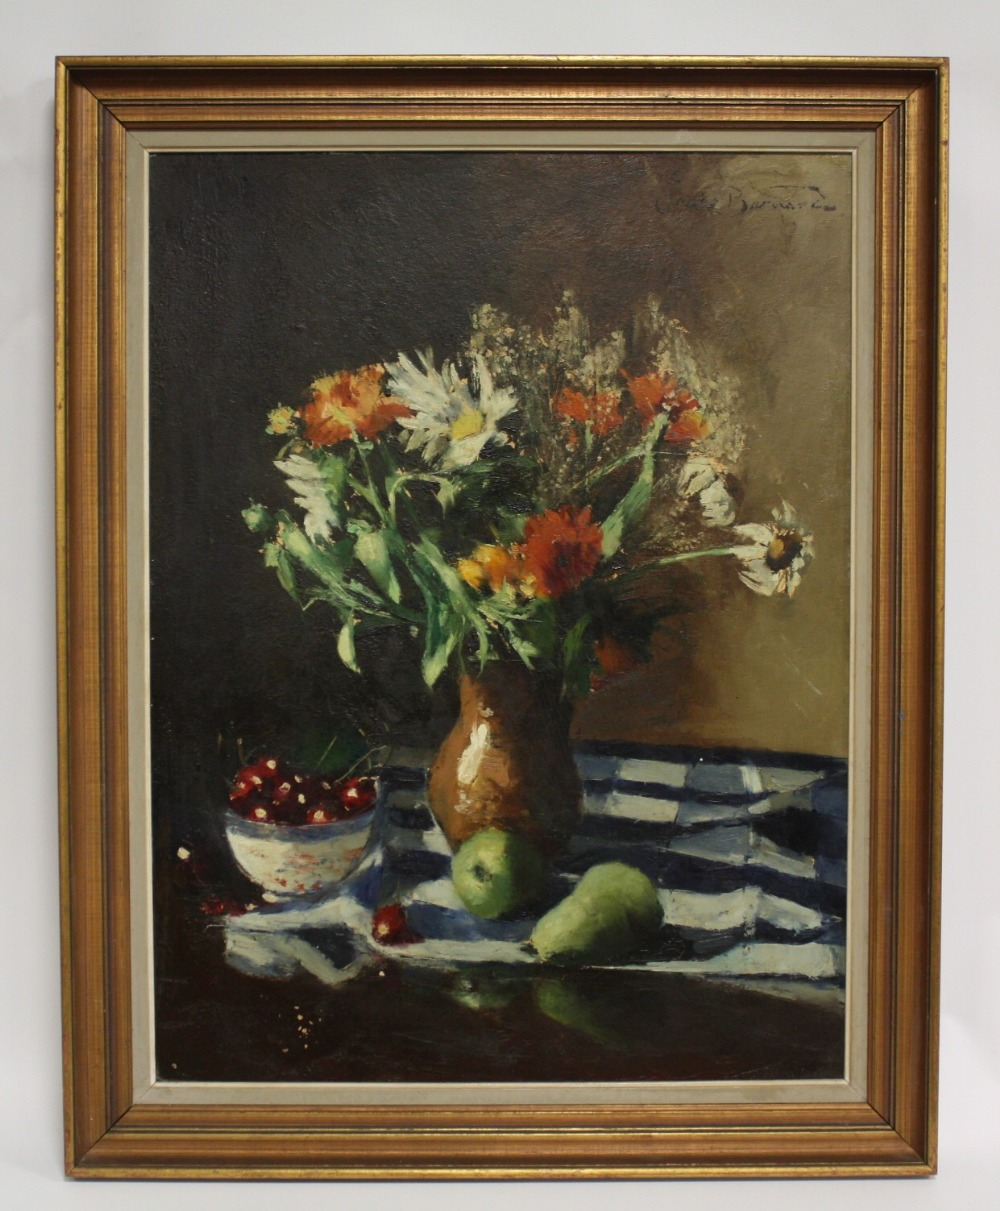 Lot 154 - (XX). An impressionist still life study of a vase of flowers, pears and a bowl of cherries on a